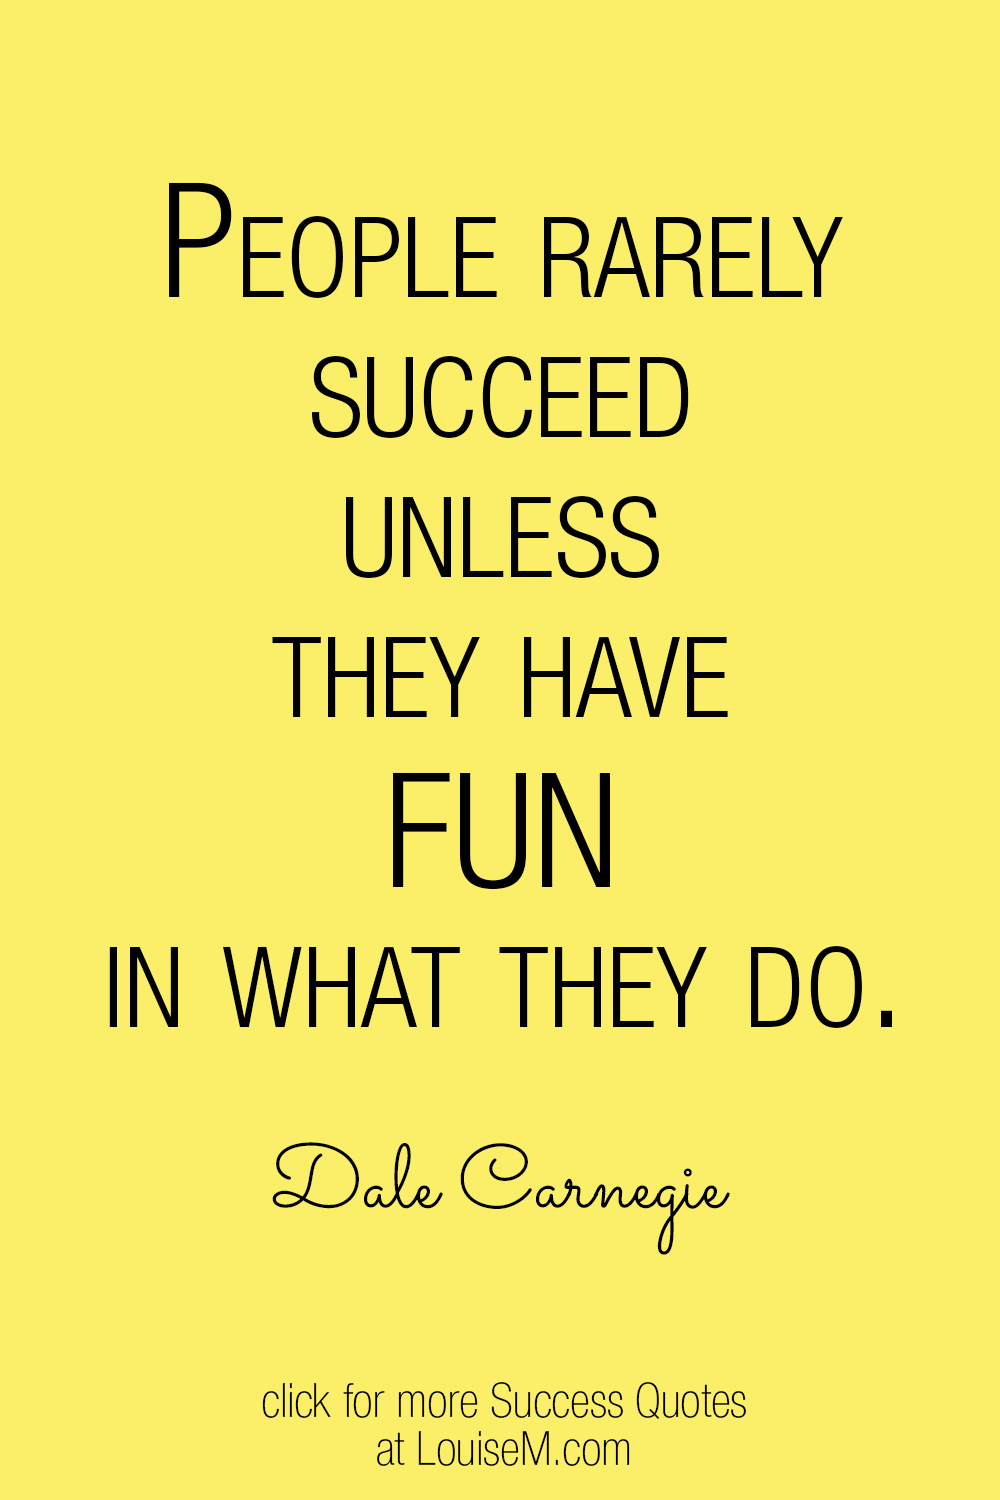 People rarely succeed unless they have fun quote on yellow background